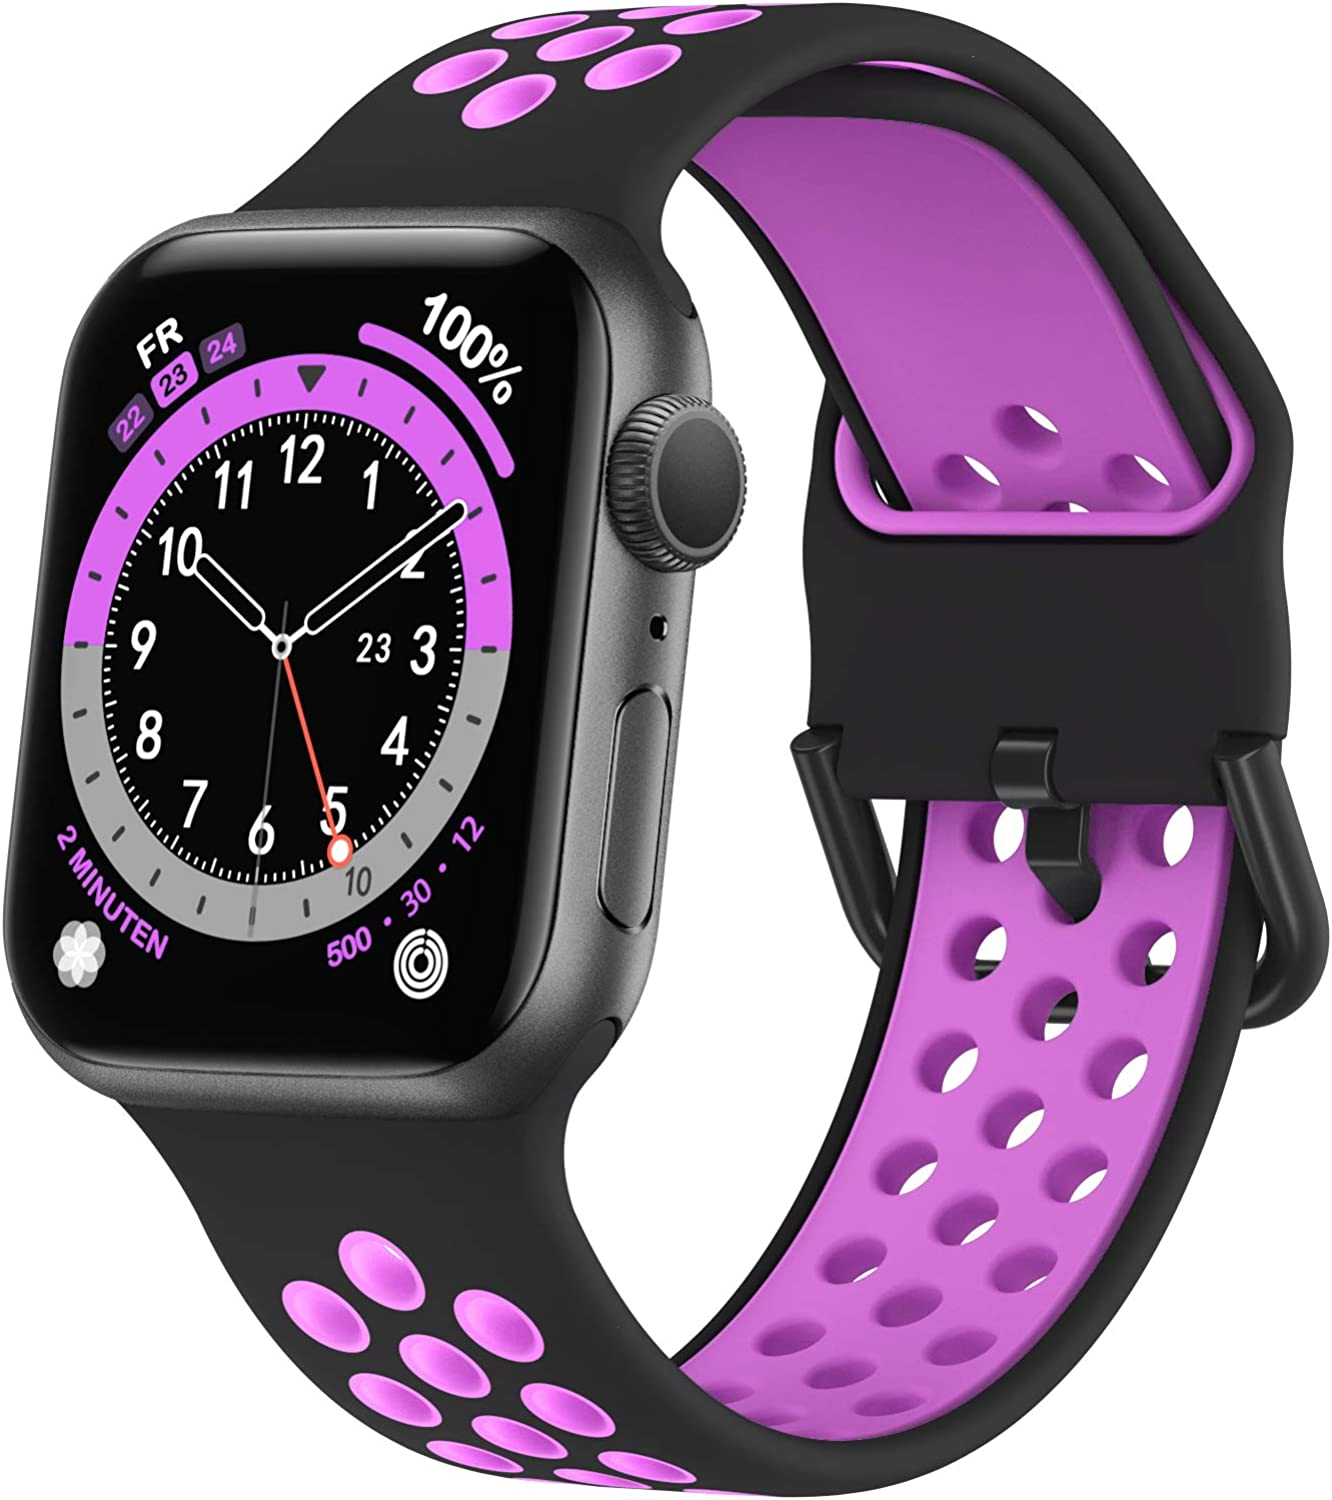 Marlova Compatible with Apple Watch Bands 44mm 42mm 40mm 38mm, Soft Silicone Breathable Air Hole Sport Wristbands with Classic Clasp for iWatch Series Se/6/5/4/3/2/1 (Watch Not Included)